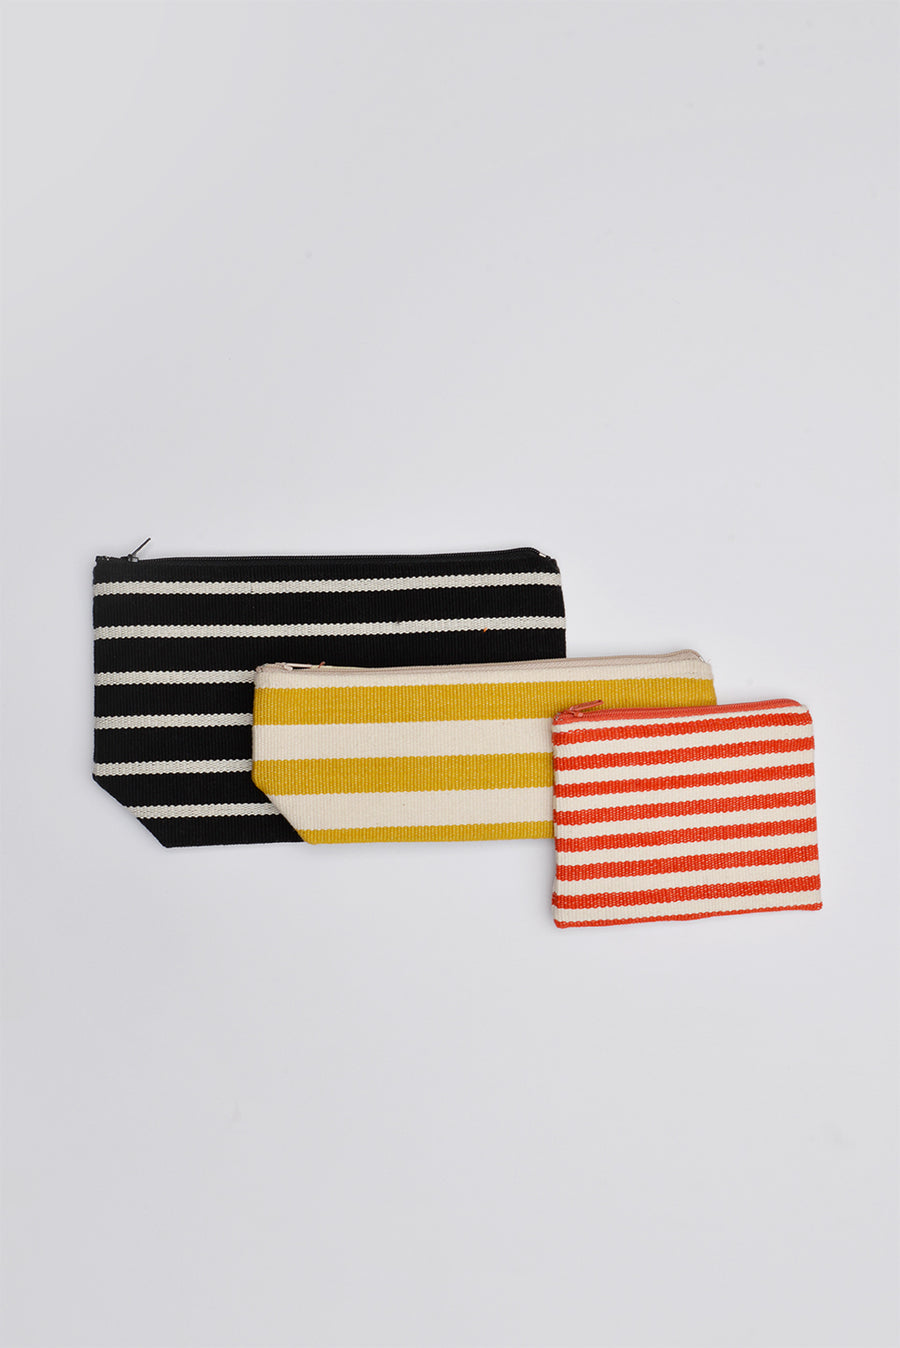 Striped Pouches & Pencil cases (Set of 3)